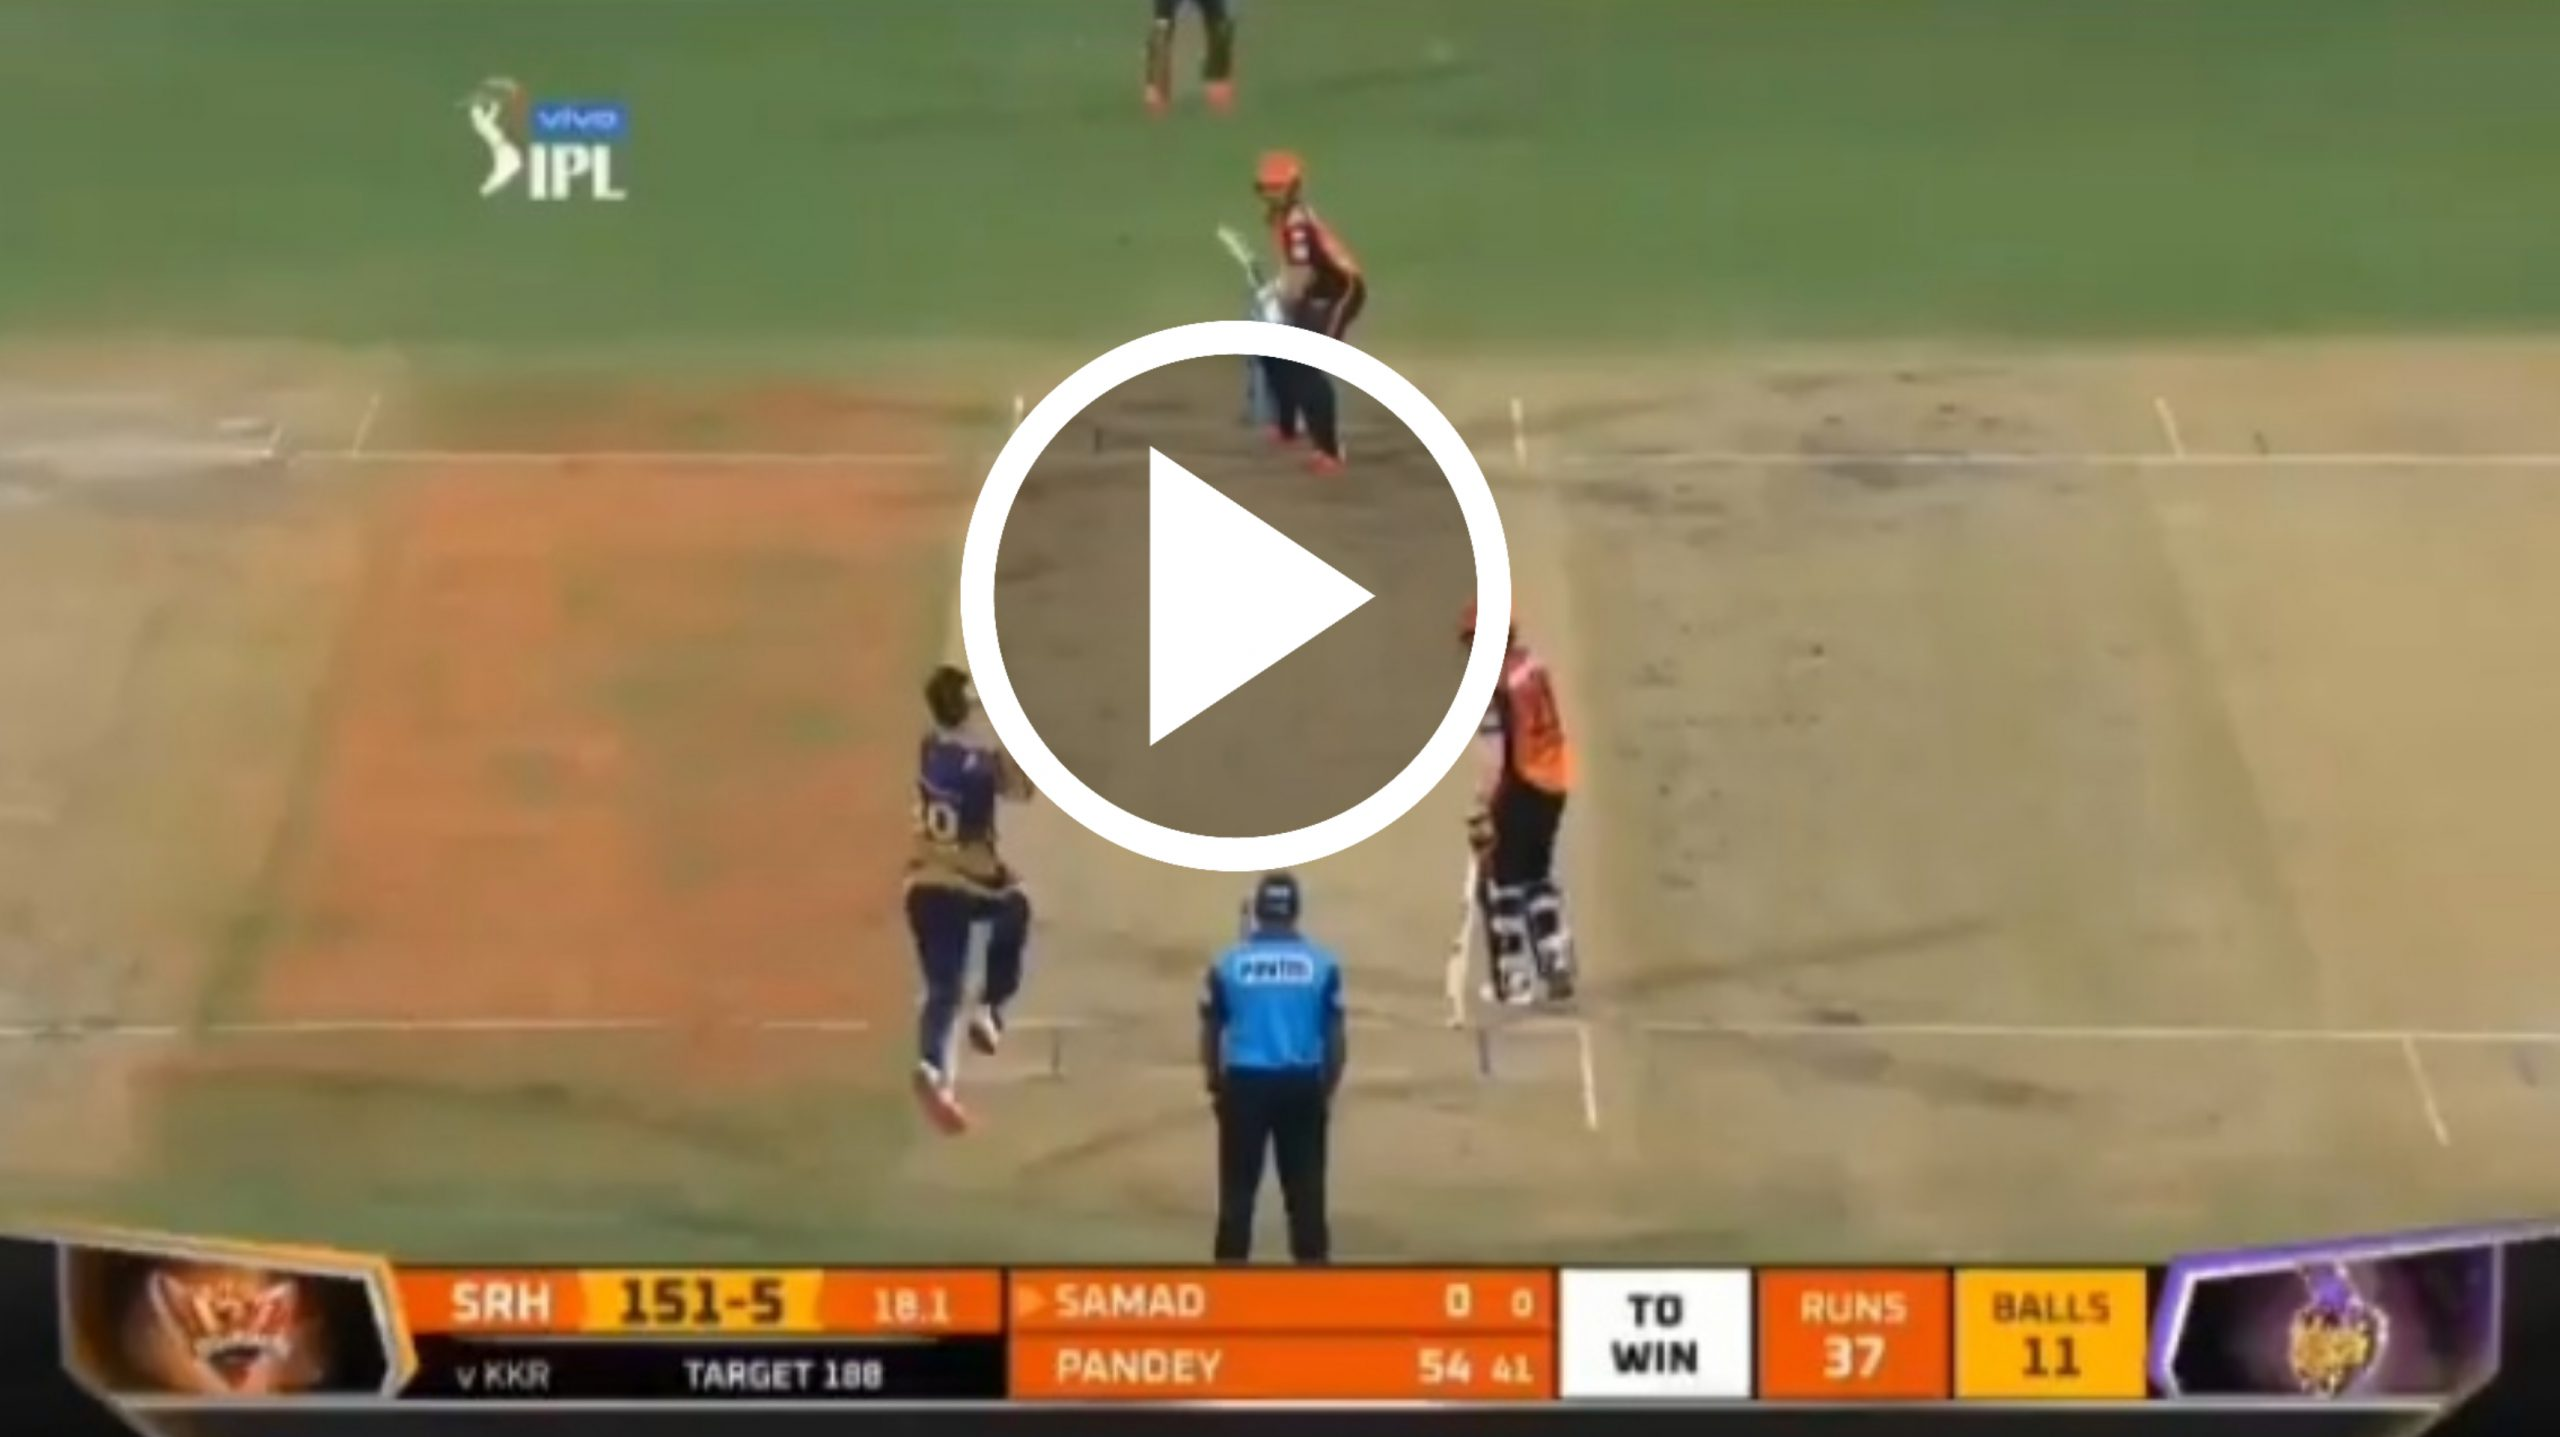 Watch: Abdul Samad hitting sixes off Pat Cummins in IPL 2021